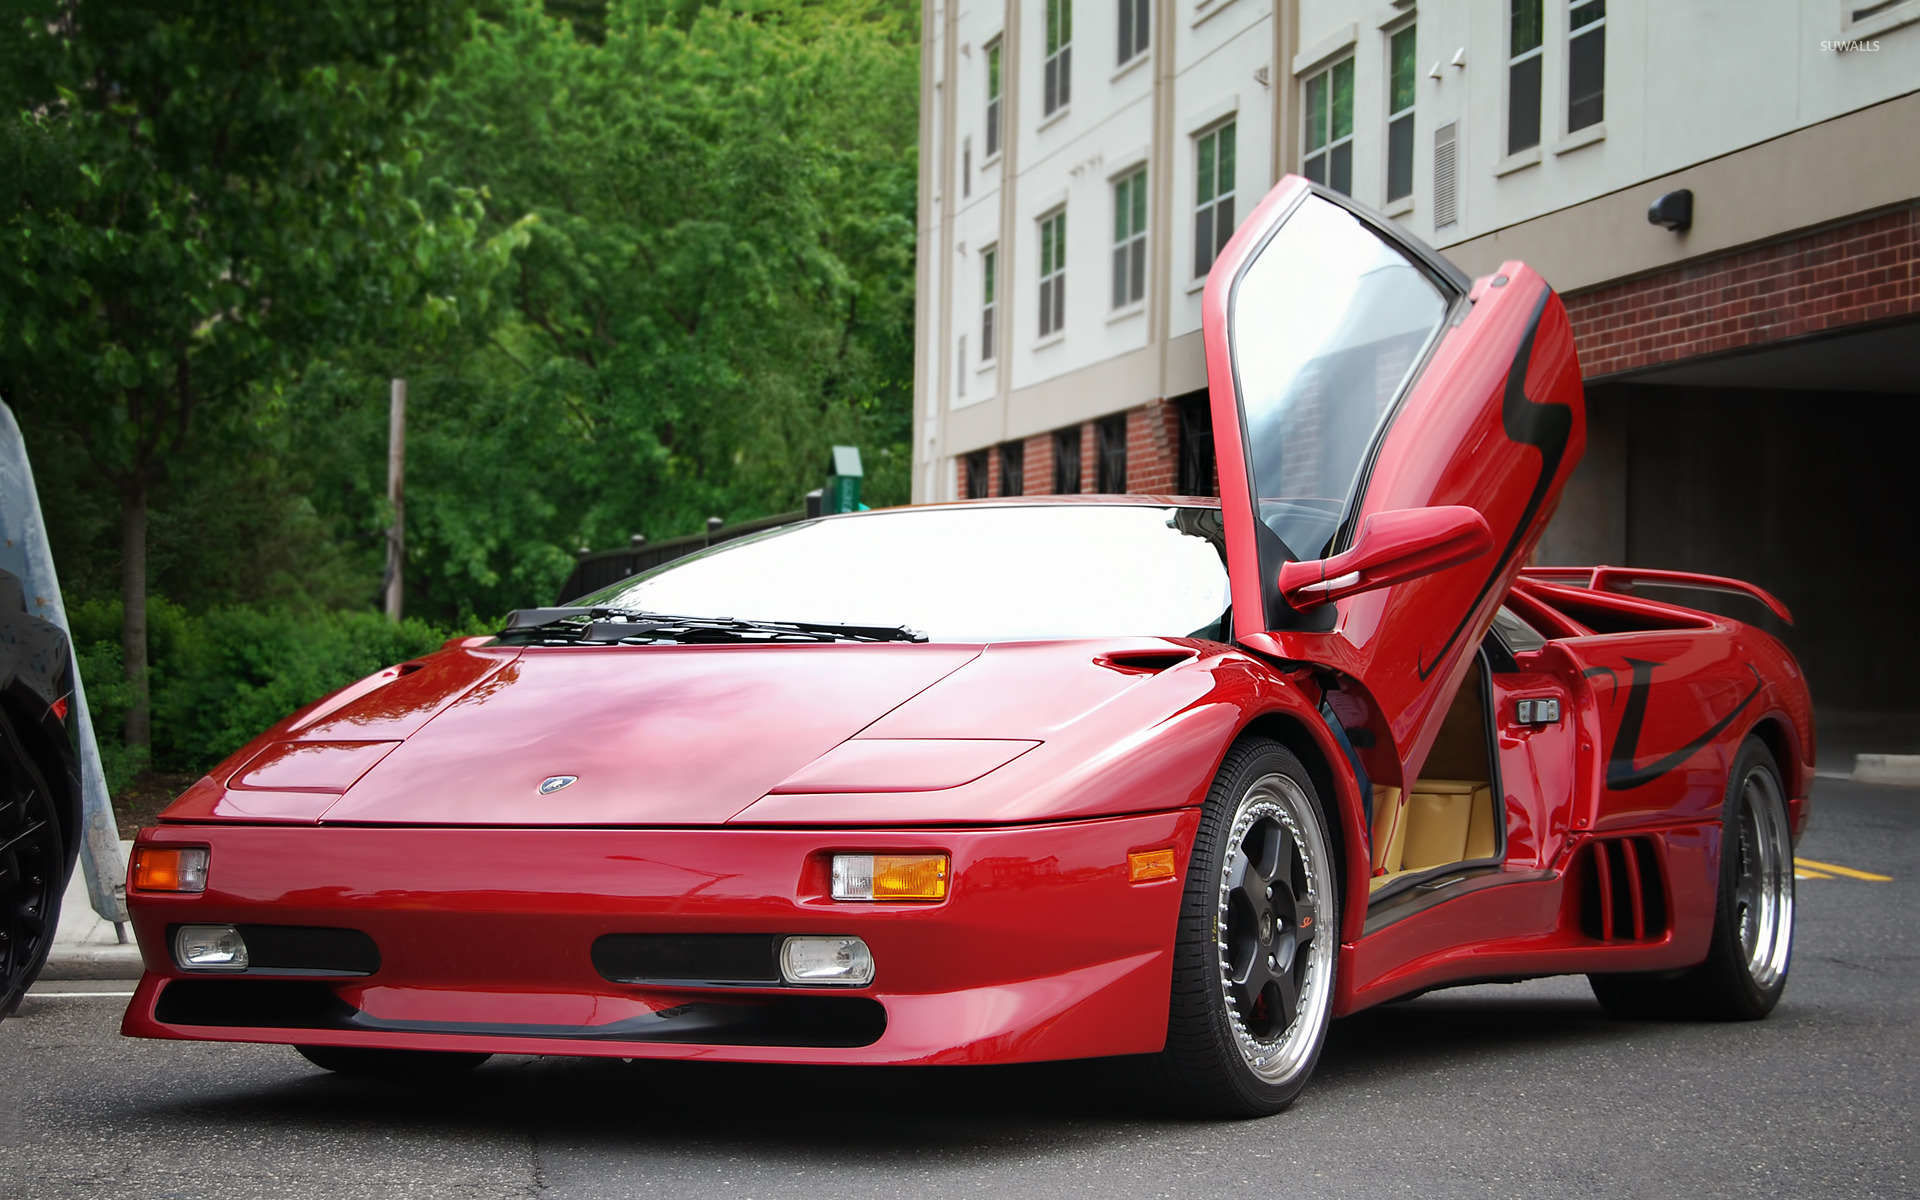 Red Lamborghini Diablo With An Open Door Front Side View Wallpaper